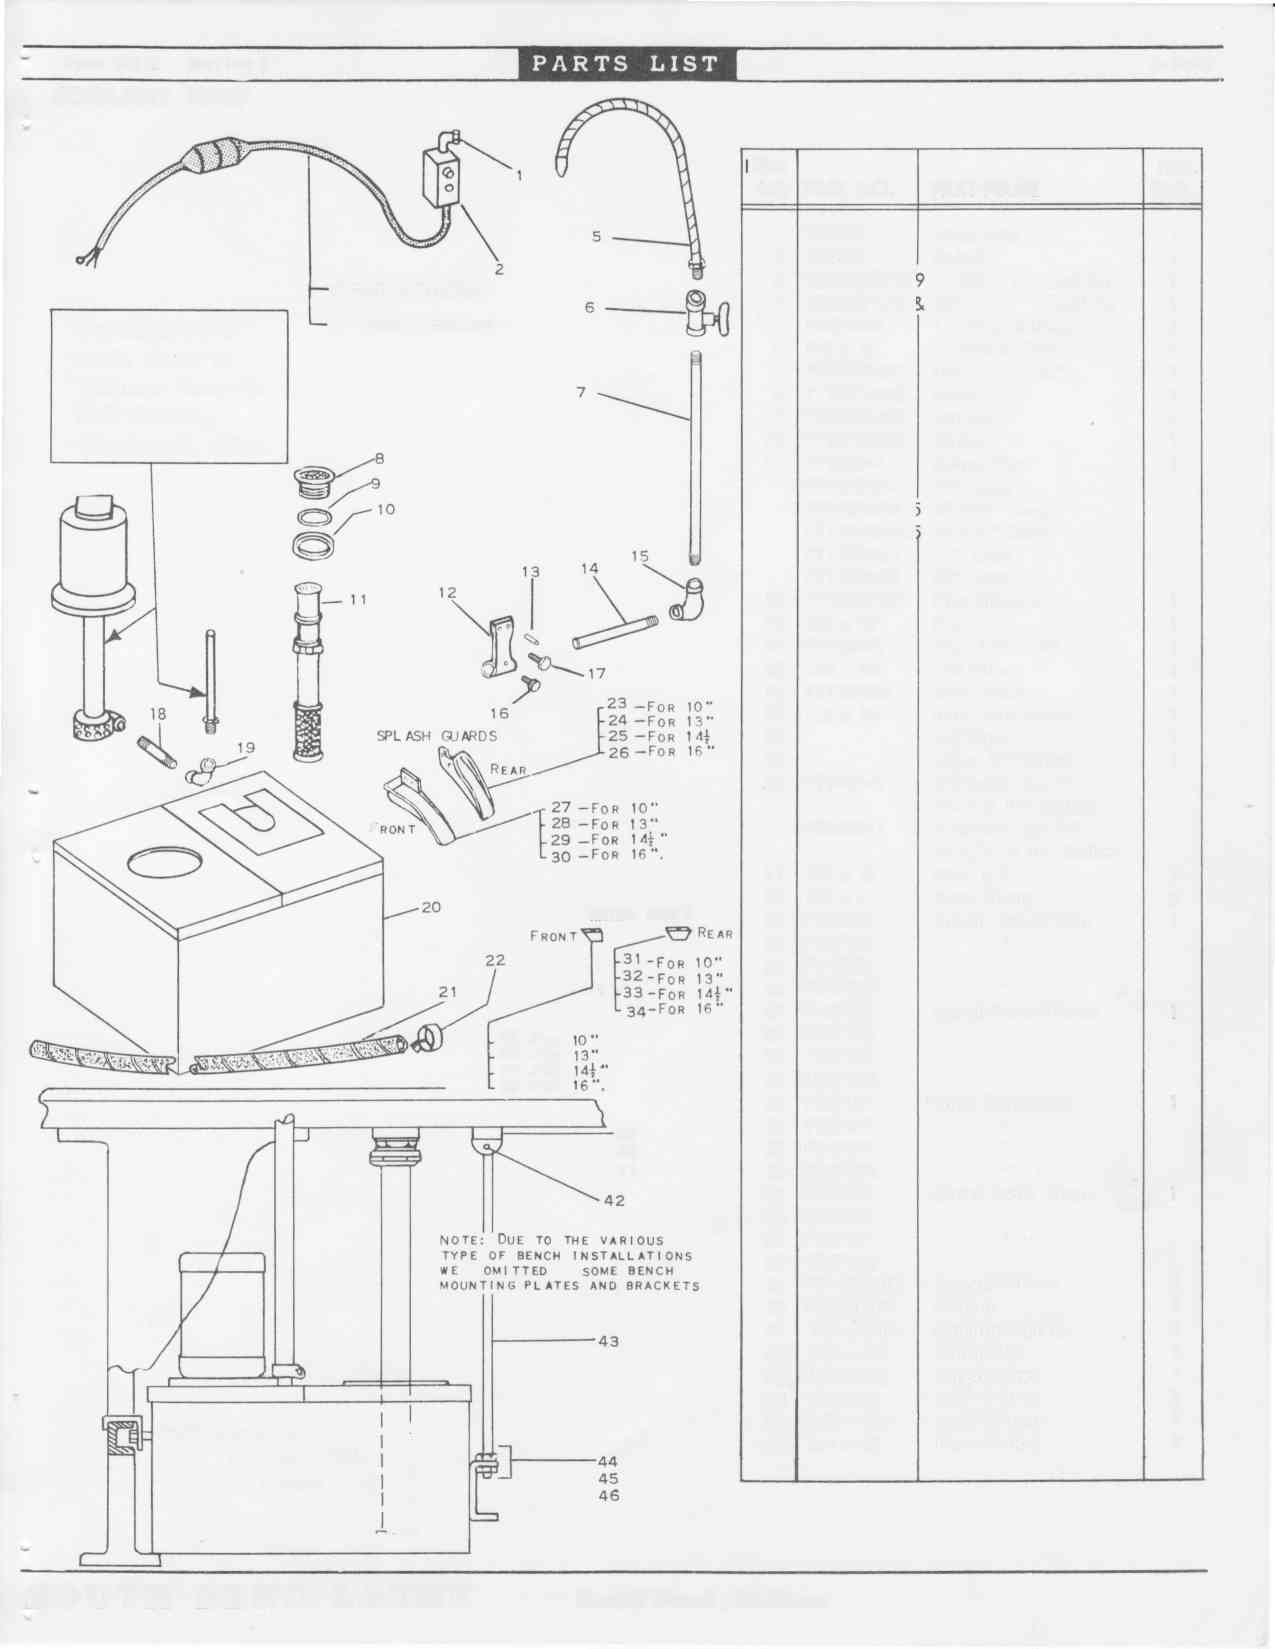 rbb hq actuator wiring diagrams honeywell actuator wiring diagrams